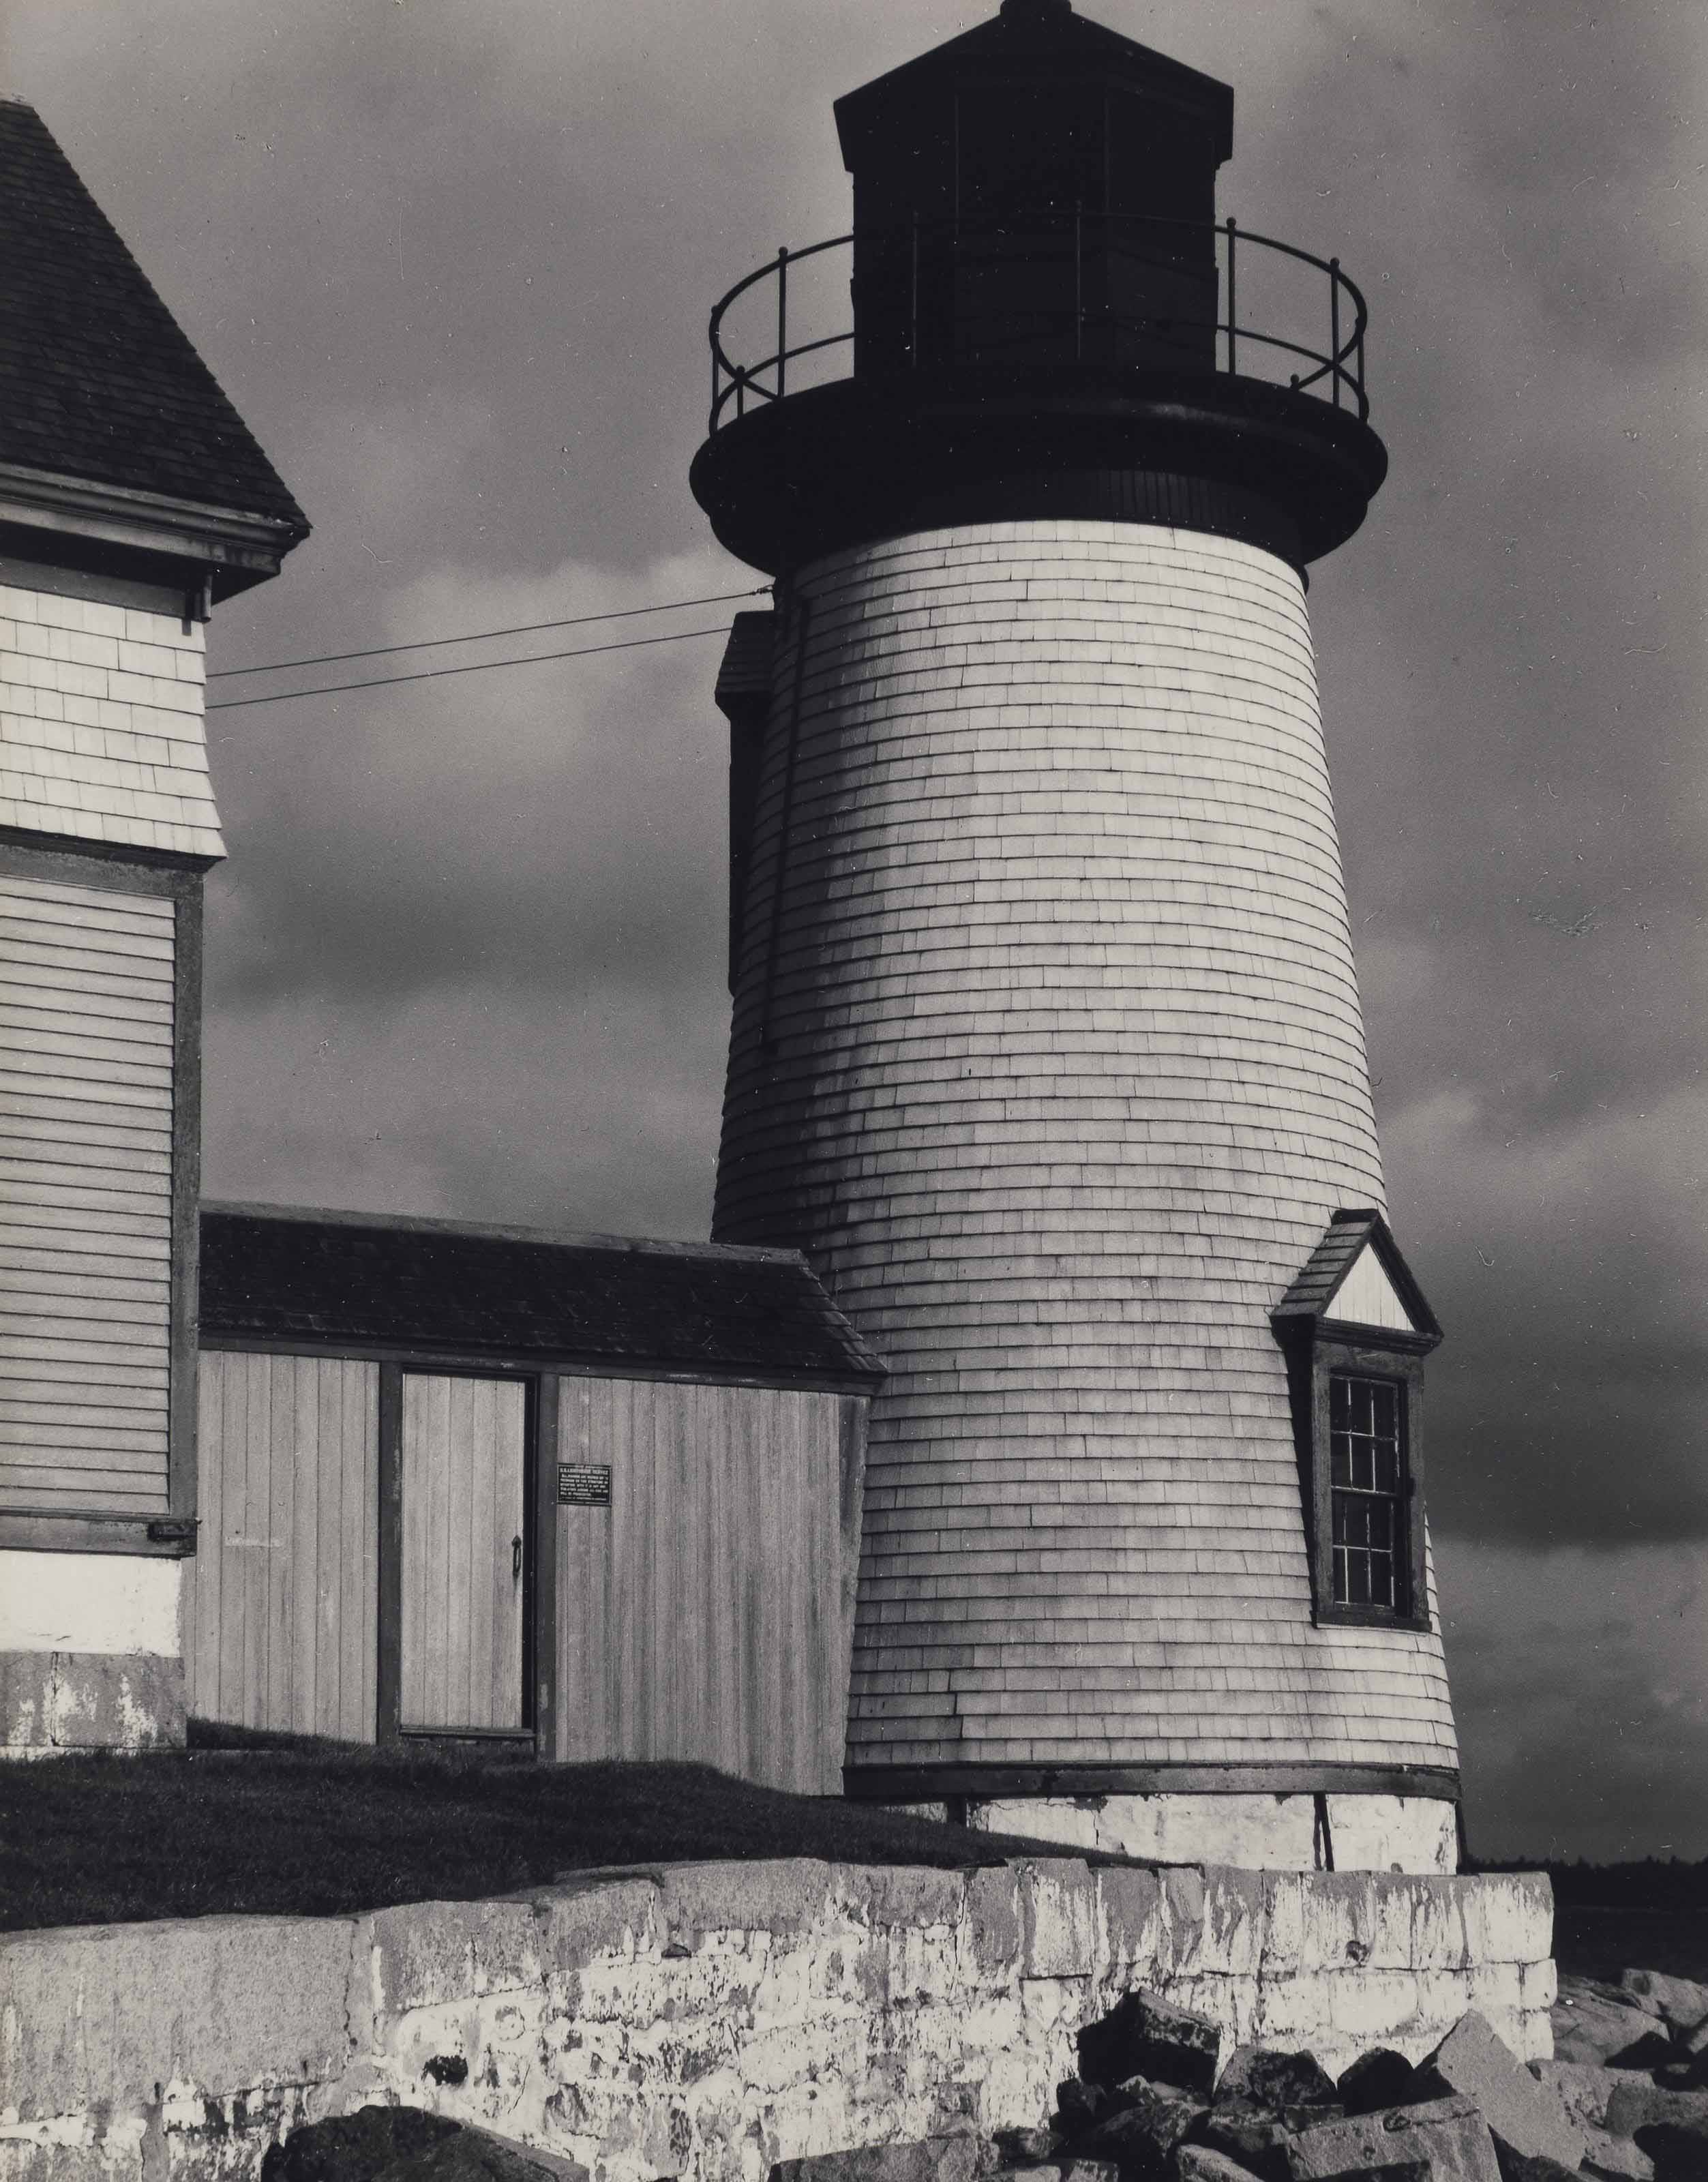 The Lighthouse, Prospect Harbor, Maine, 1945